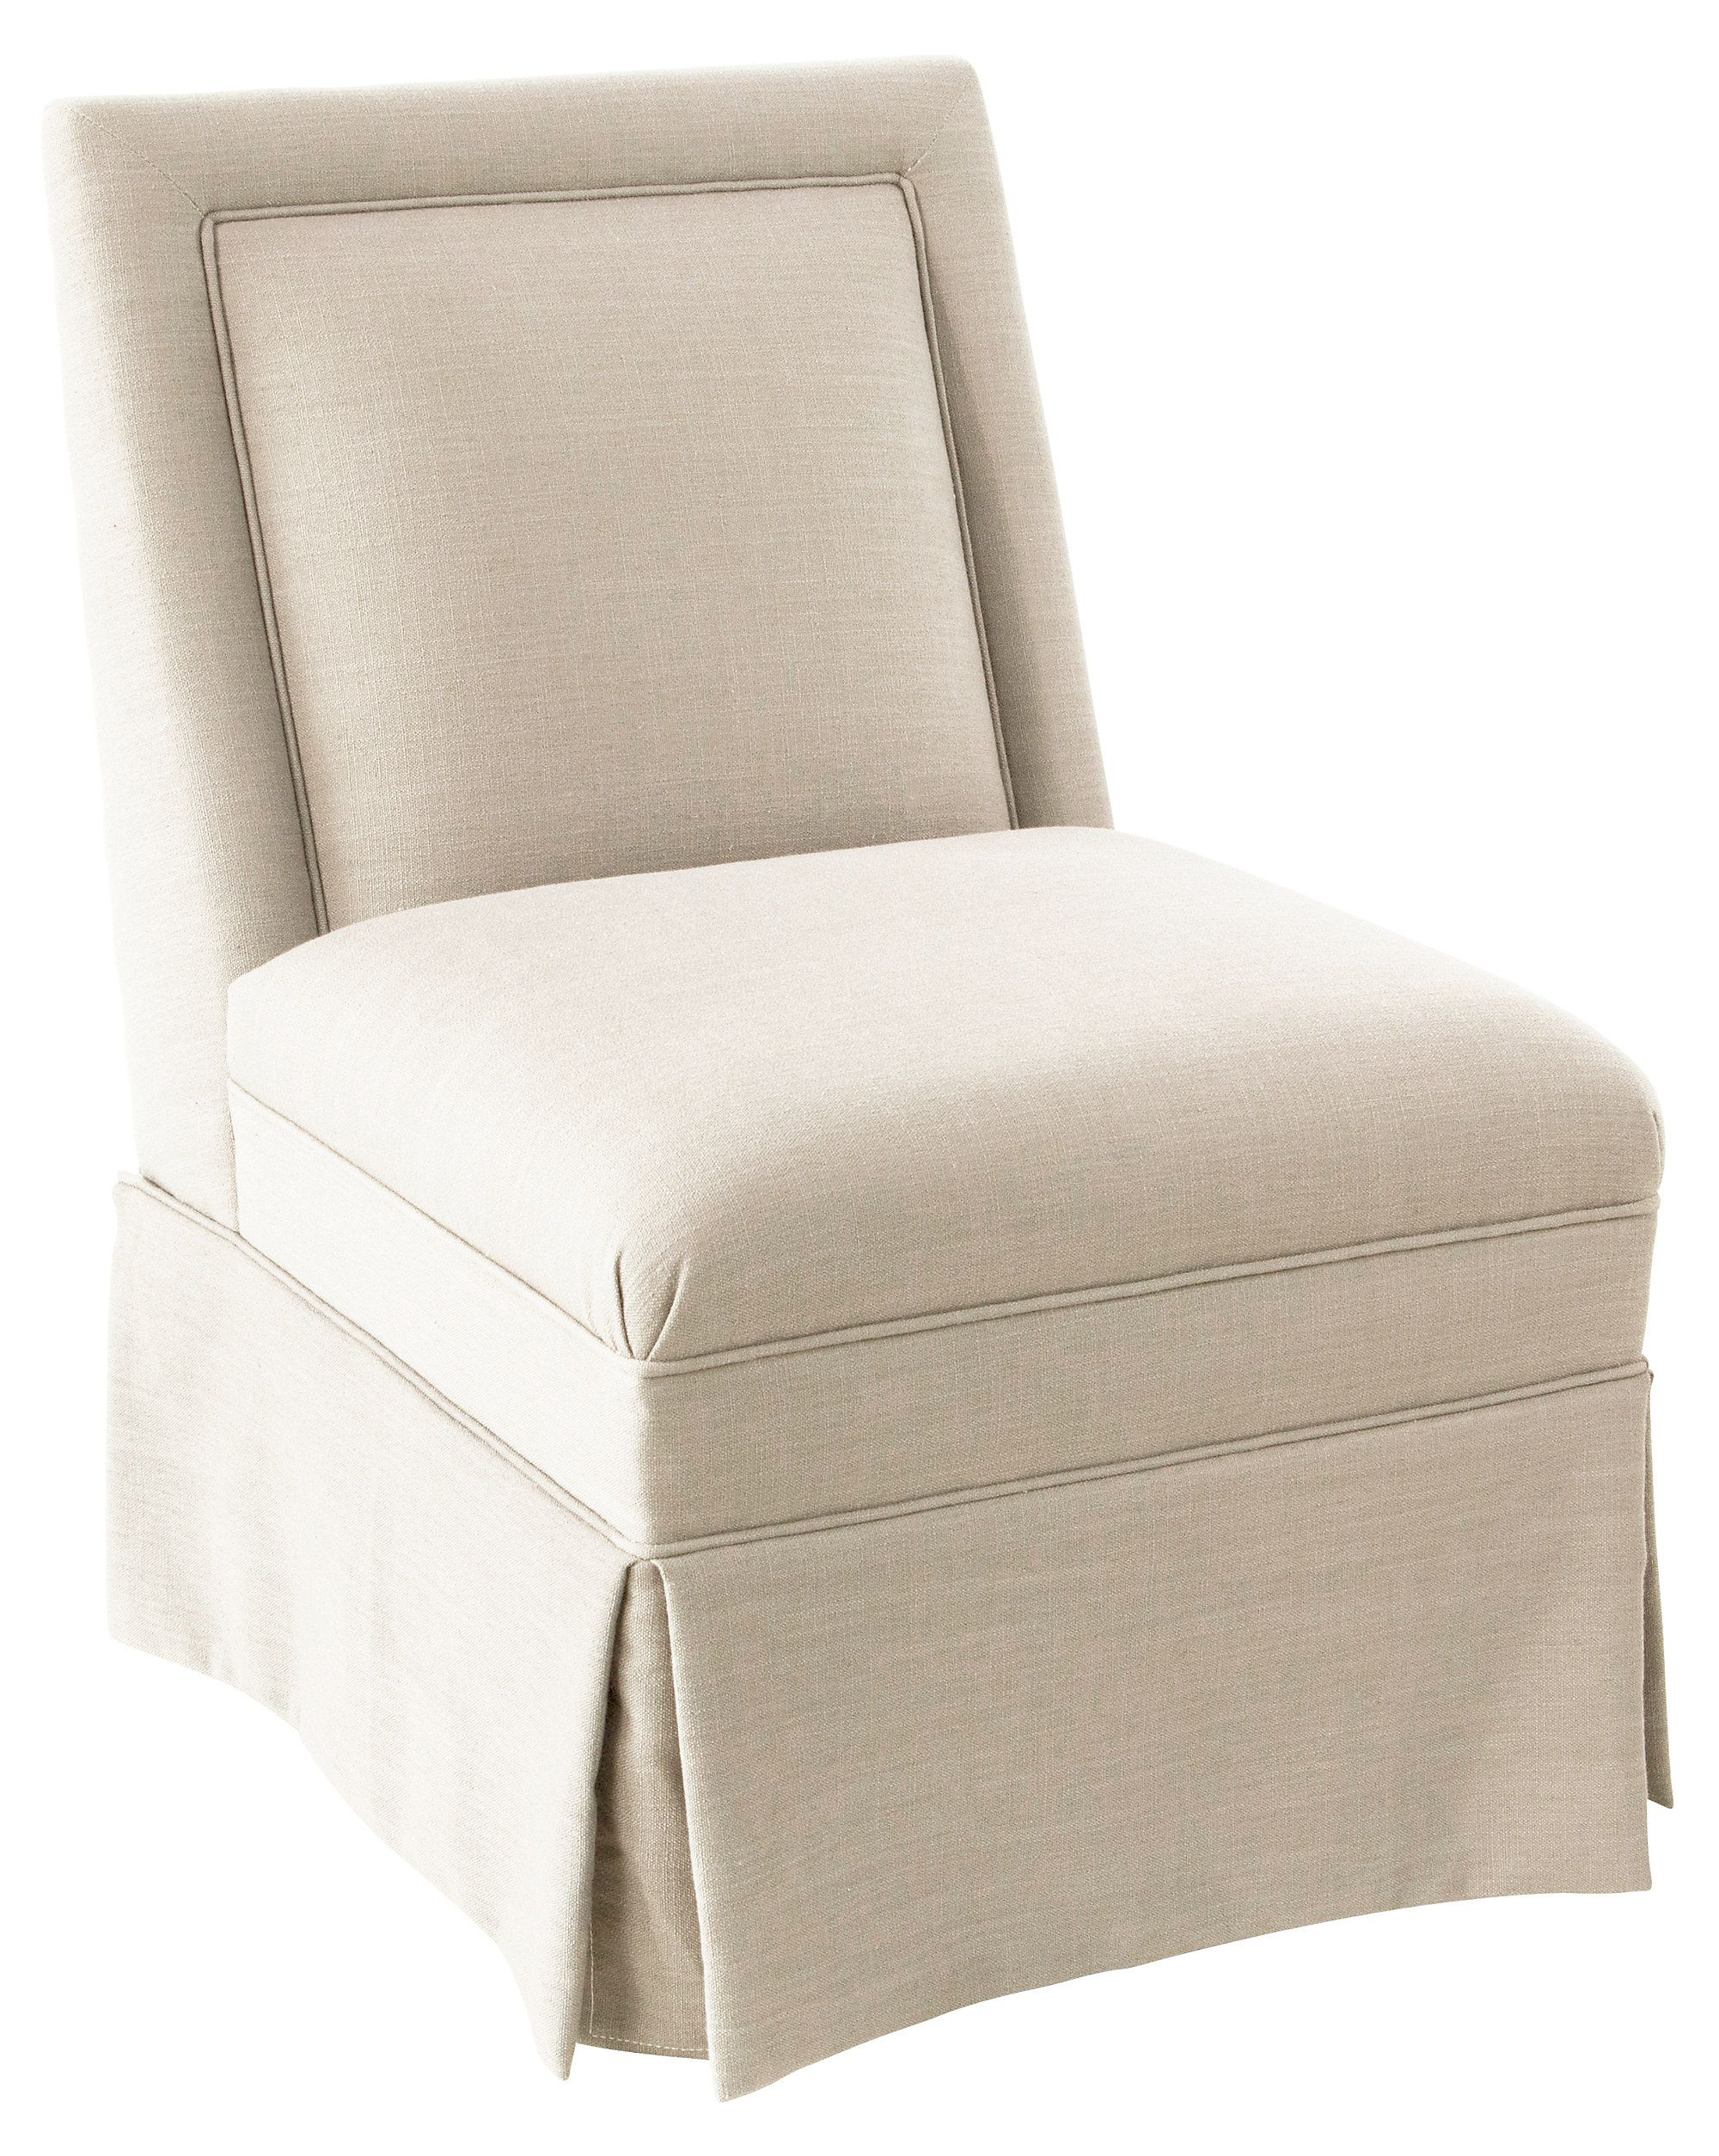 Designed by us and available only at One Kings Lane: This skirted slipper chair…